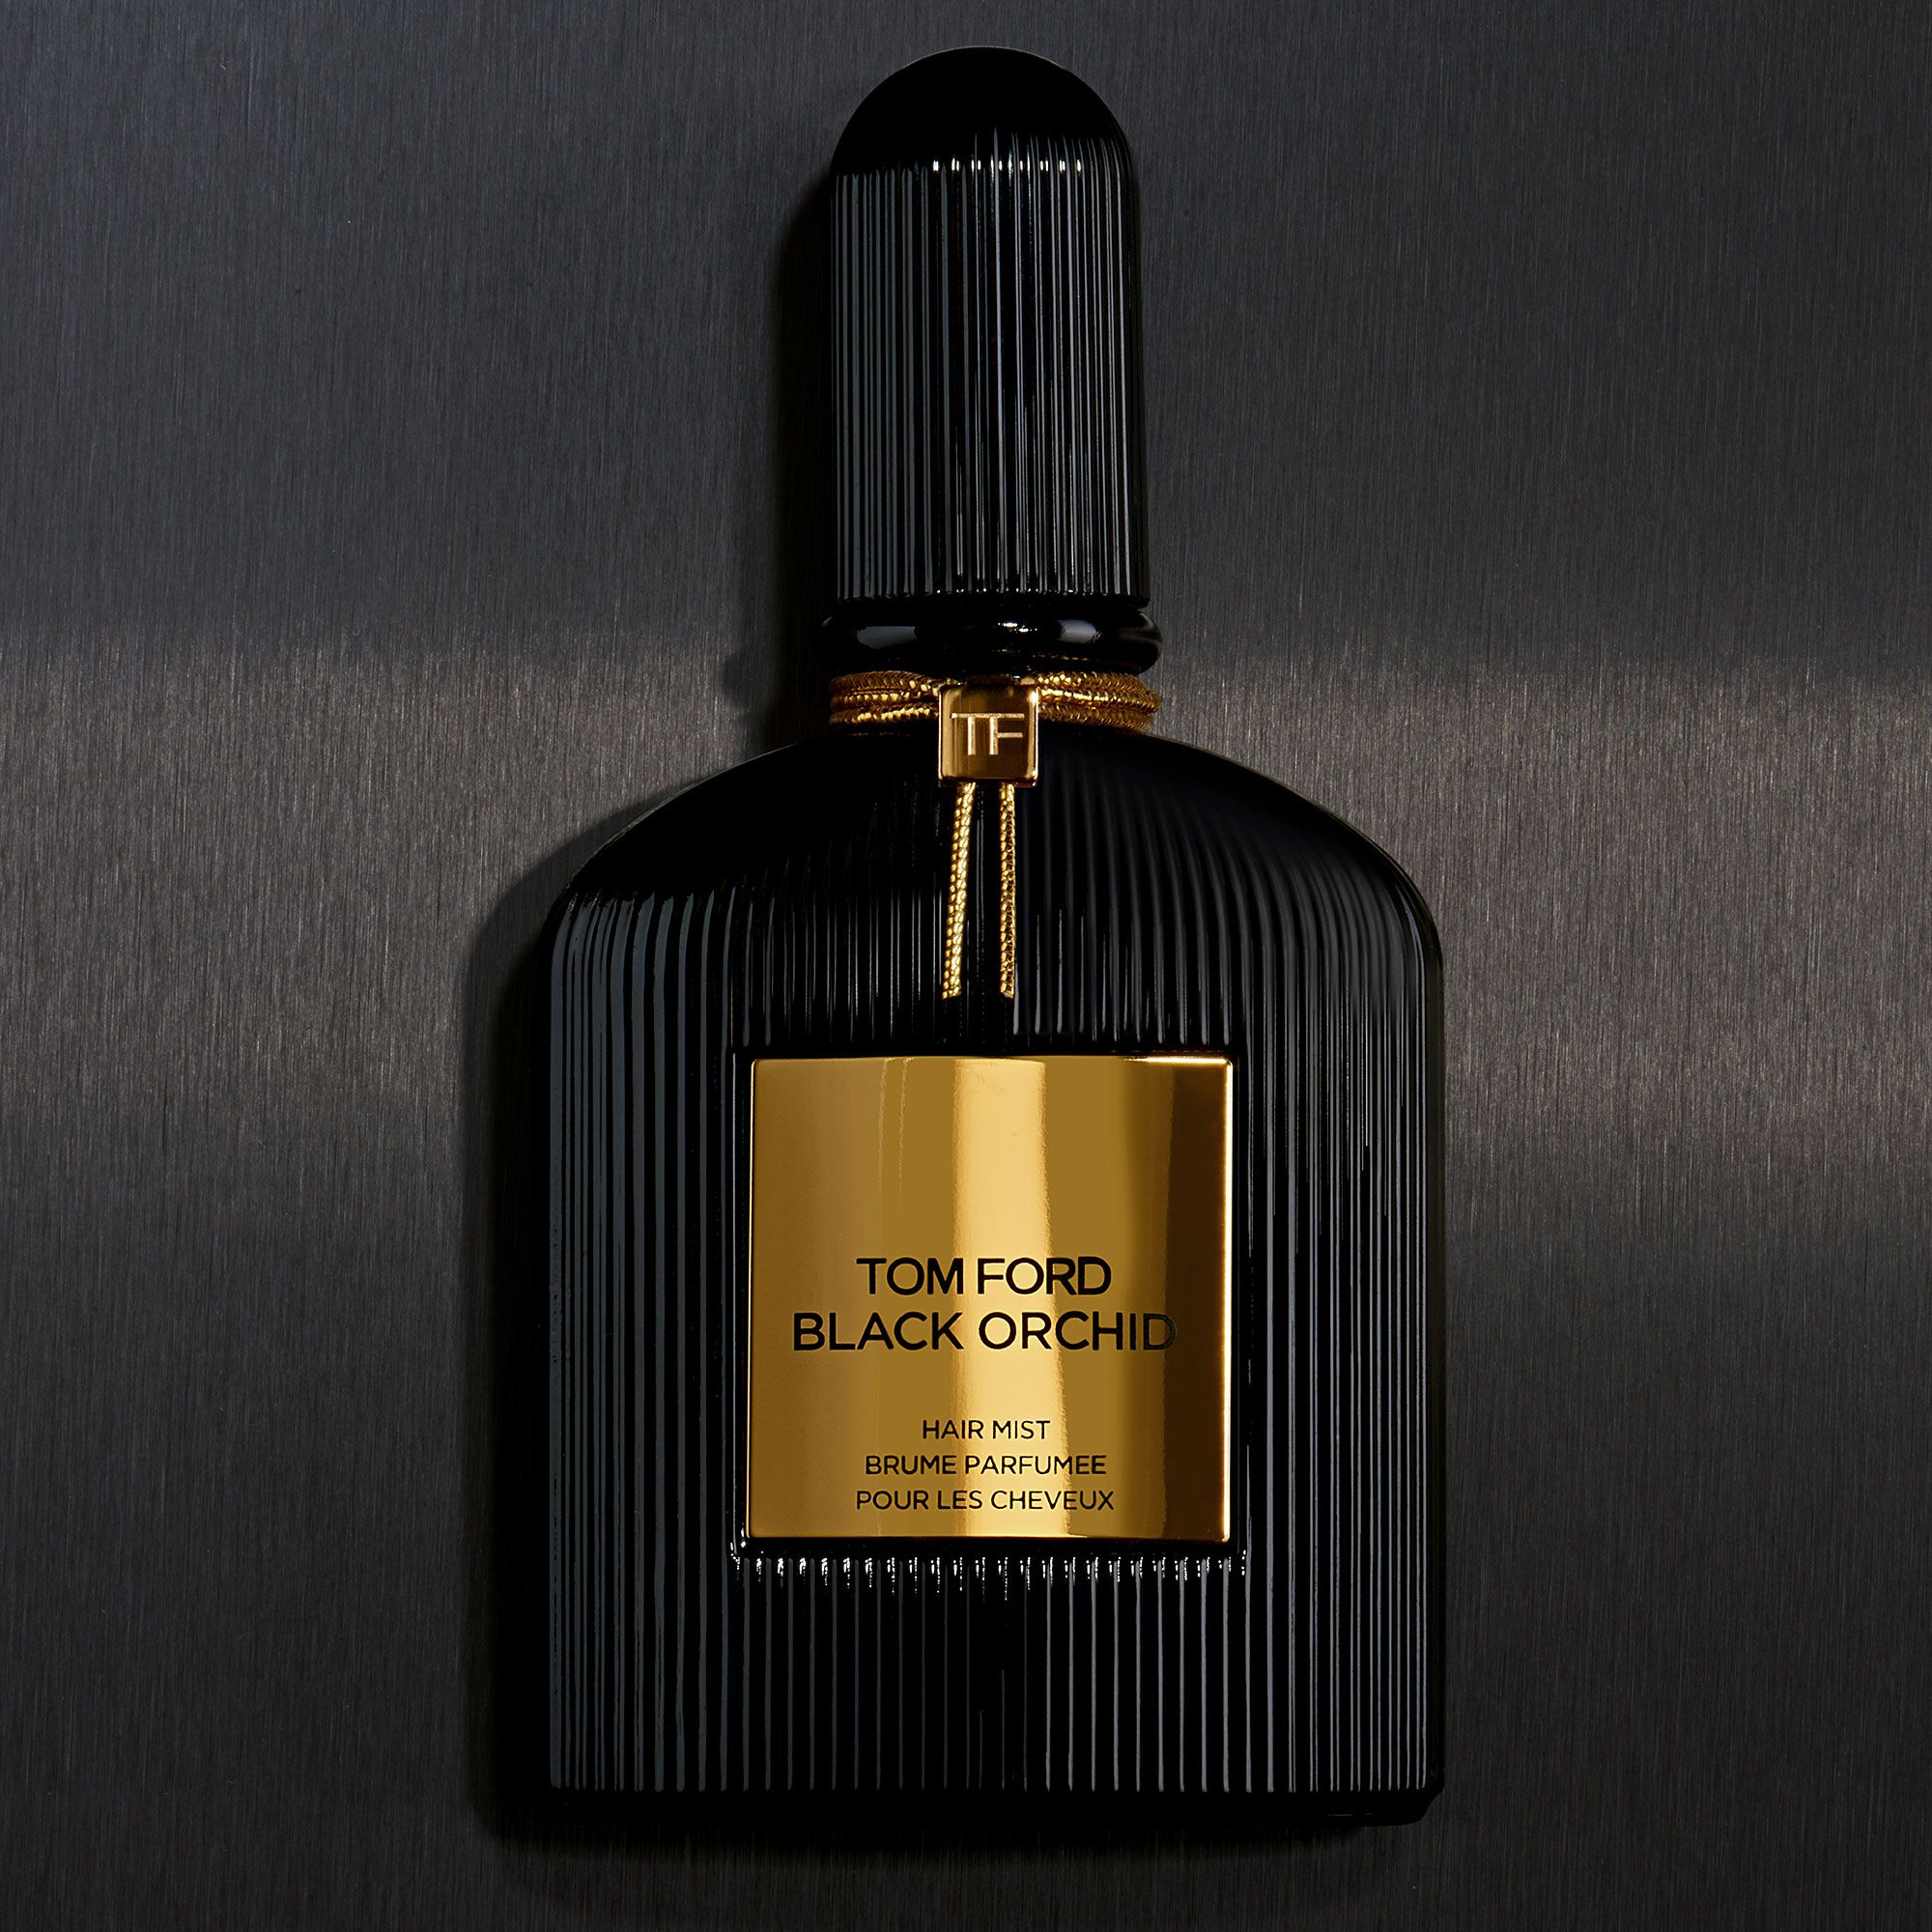 Iconic. Elusive. Seductive. Experience Black Orchid Hair Mist ... 31499b4af1